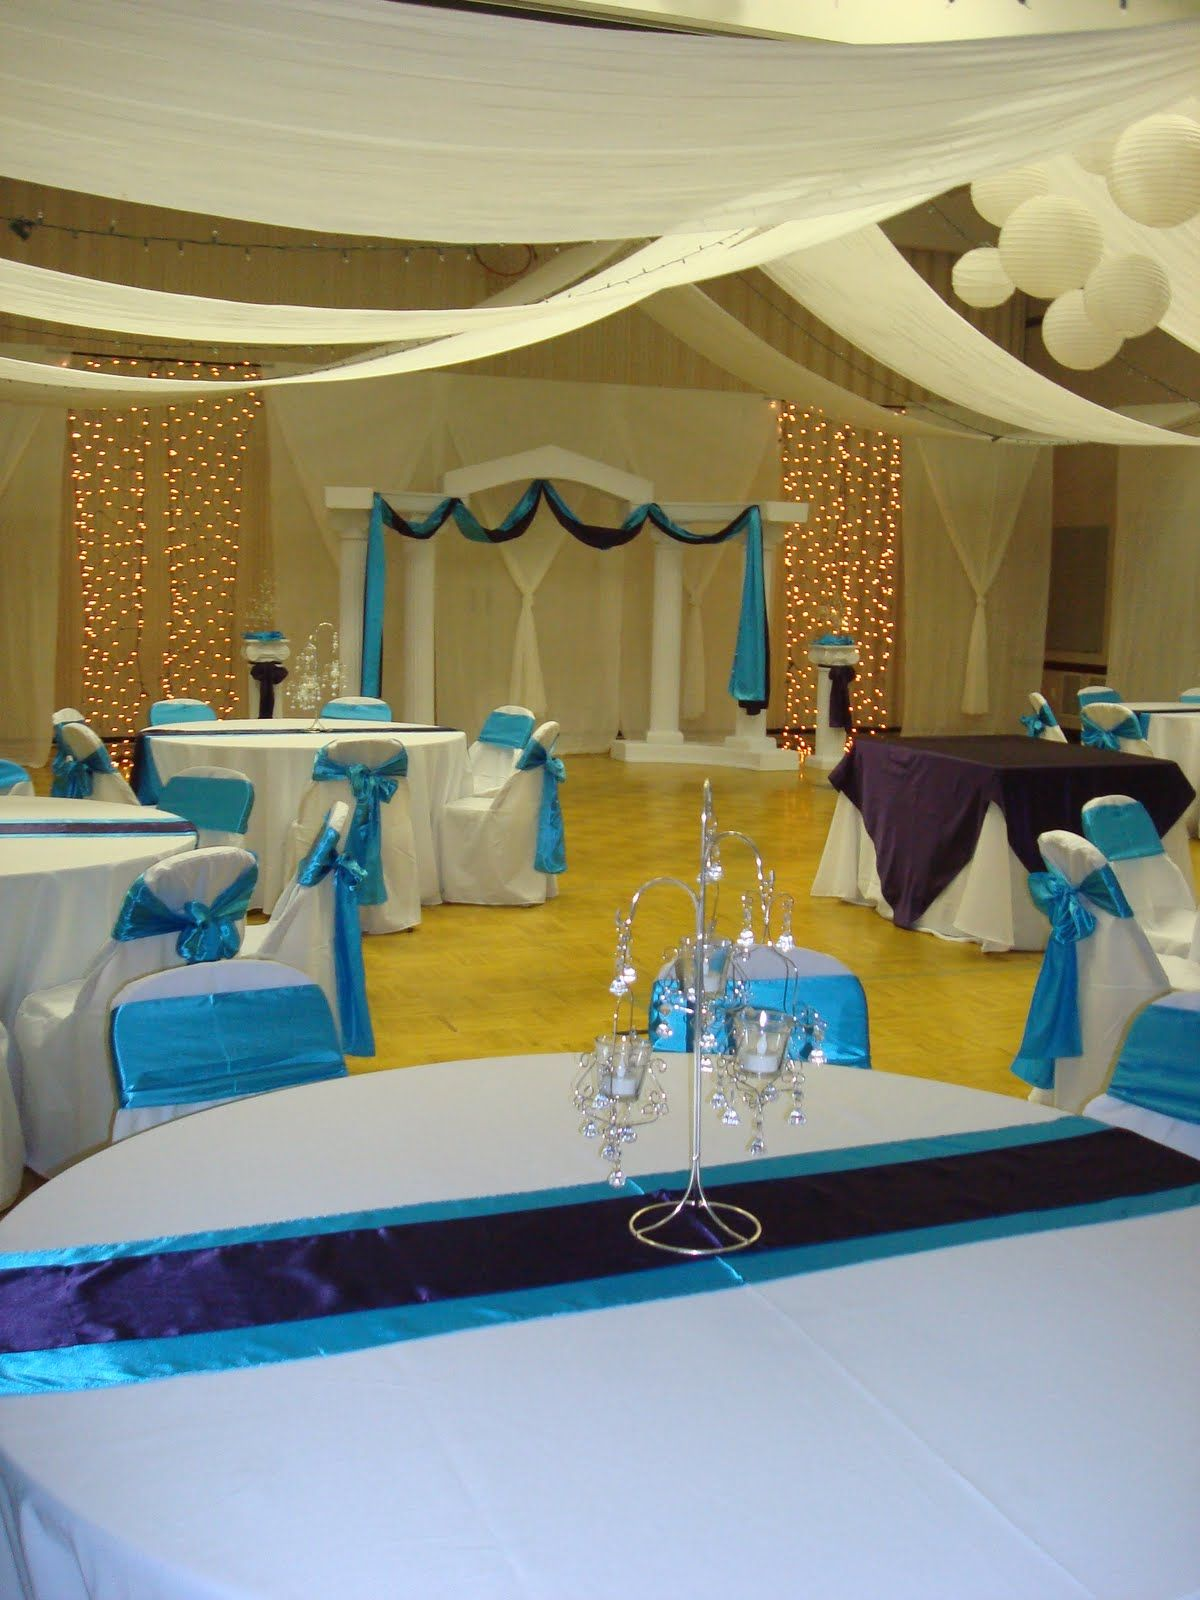 Lds cultural hall wedding decorations adore your decor utah lds cultural hall wedding decorations adore your decor utah cultural hall wedding decor junglespirit Image collections